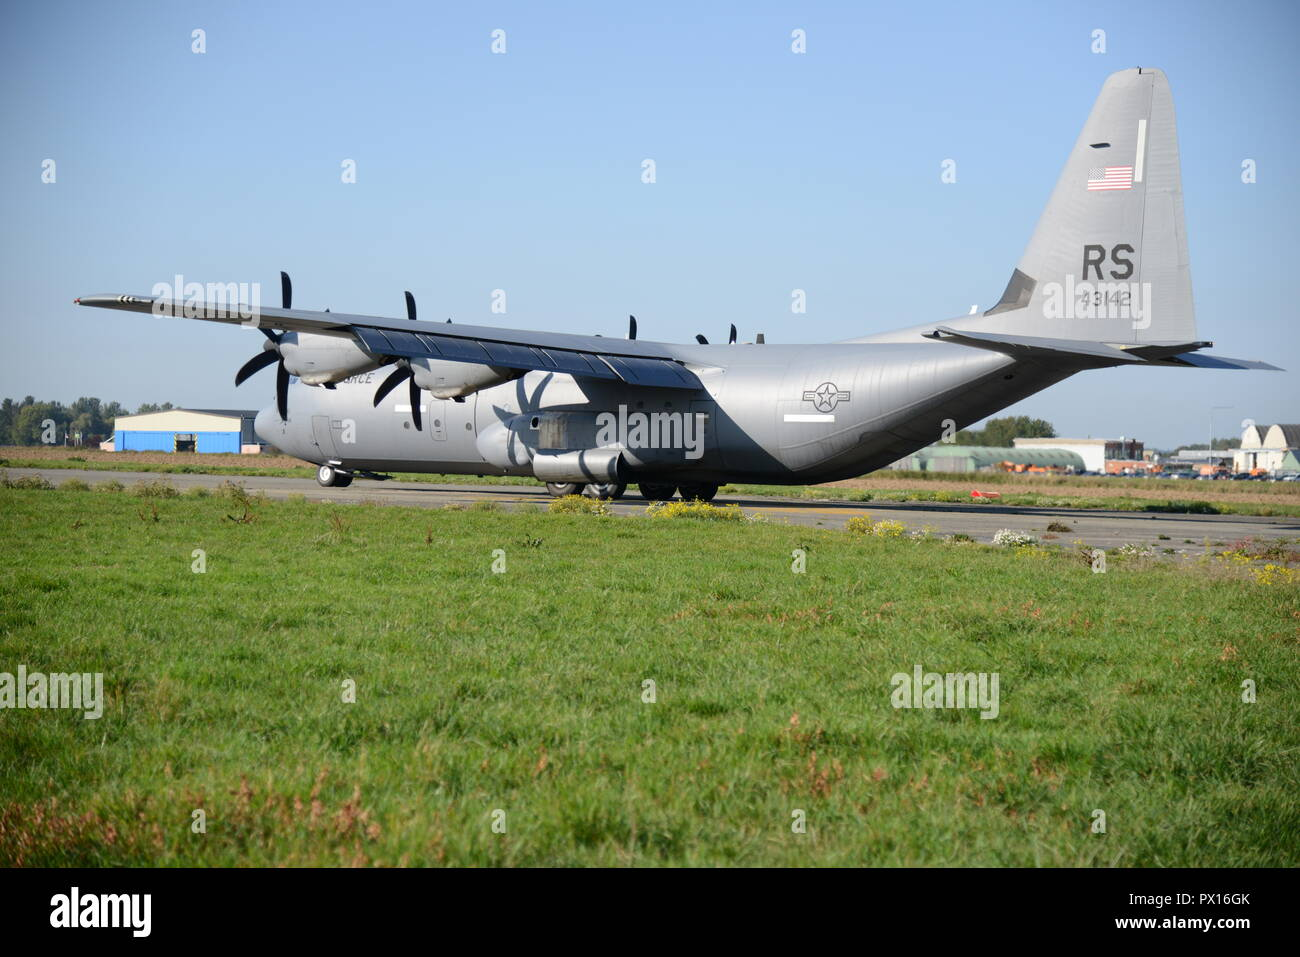 A C-130J Super Hercules of the 86th Airlift Wing lands on SHAPE Air Field on Chièvres Air Base, Belgium, Oct. 4, 2018. The exercise's objective was to validate the use of the drop zone and see increased training capabilities for NATO. (U.S. Army photo by Visual Information Specialist Henri Cambier) - Stock Image